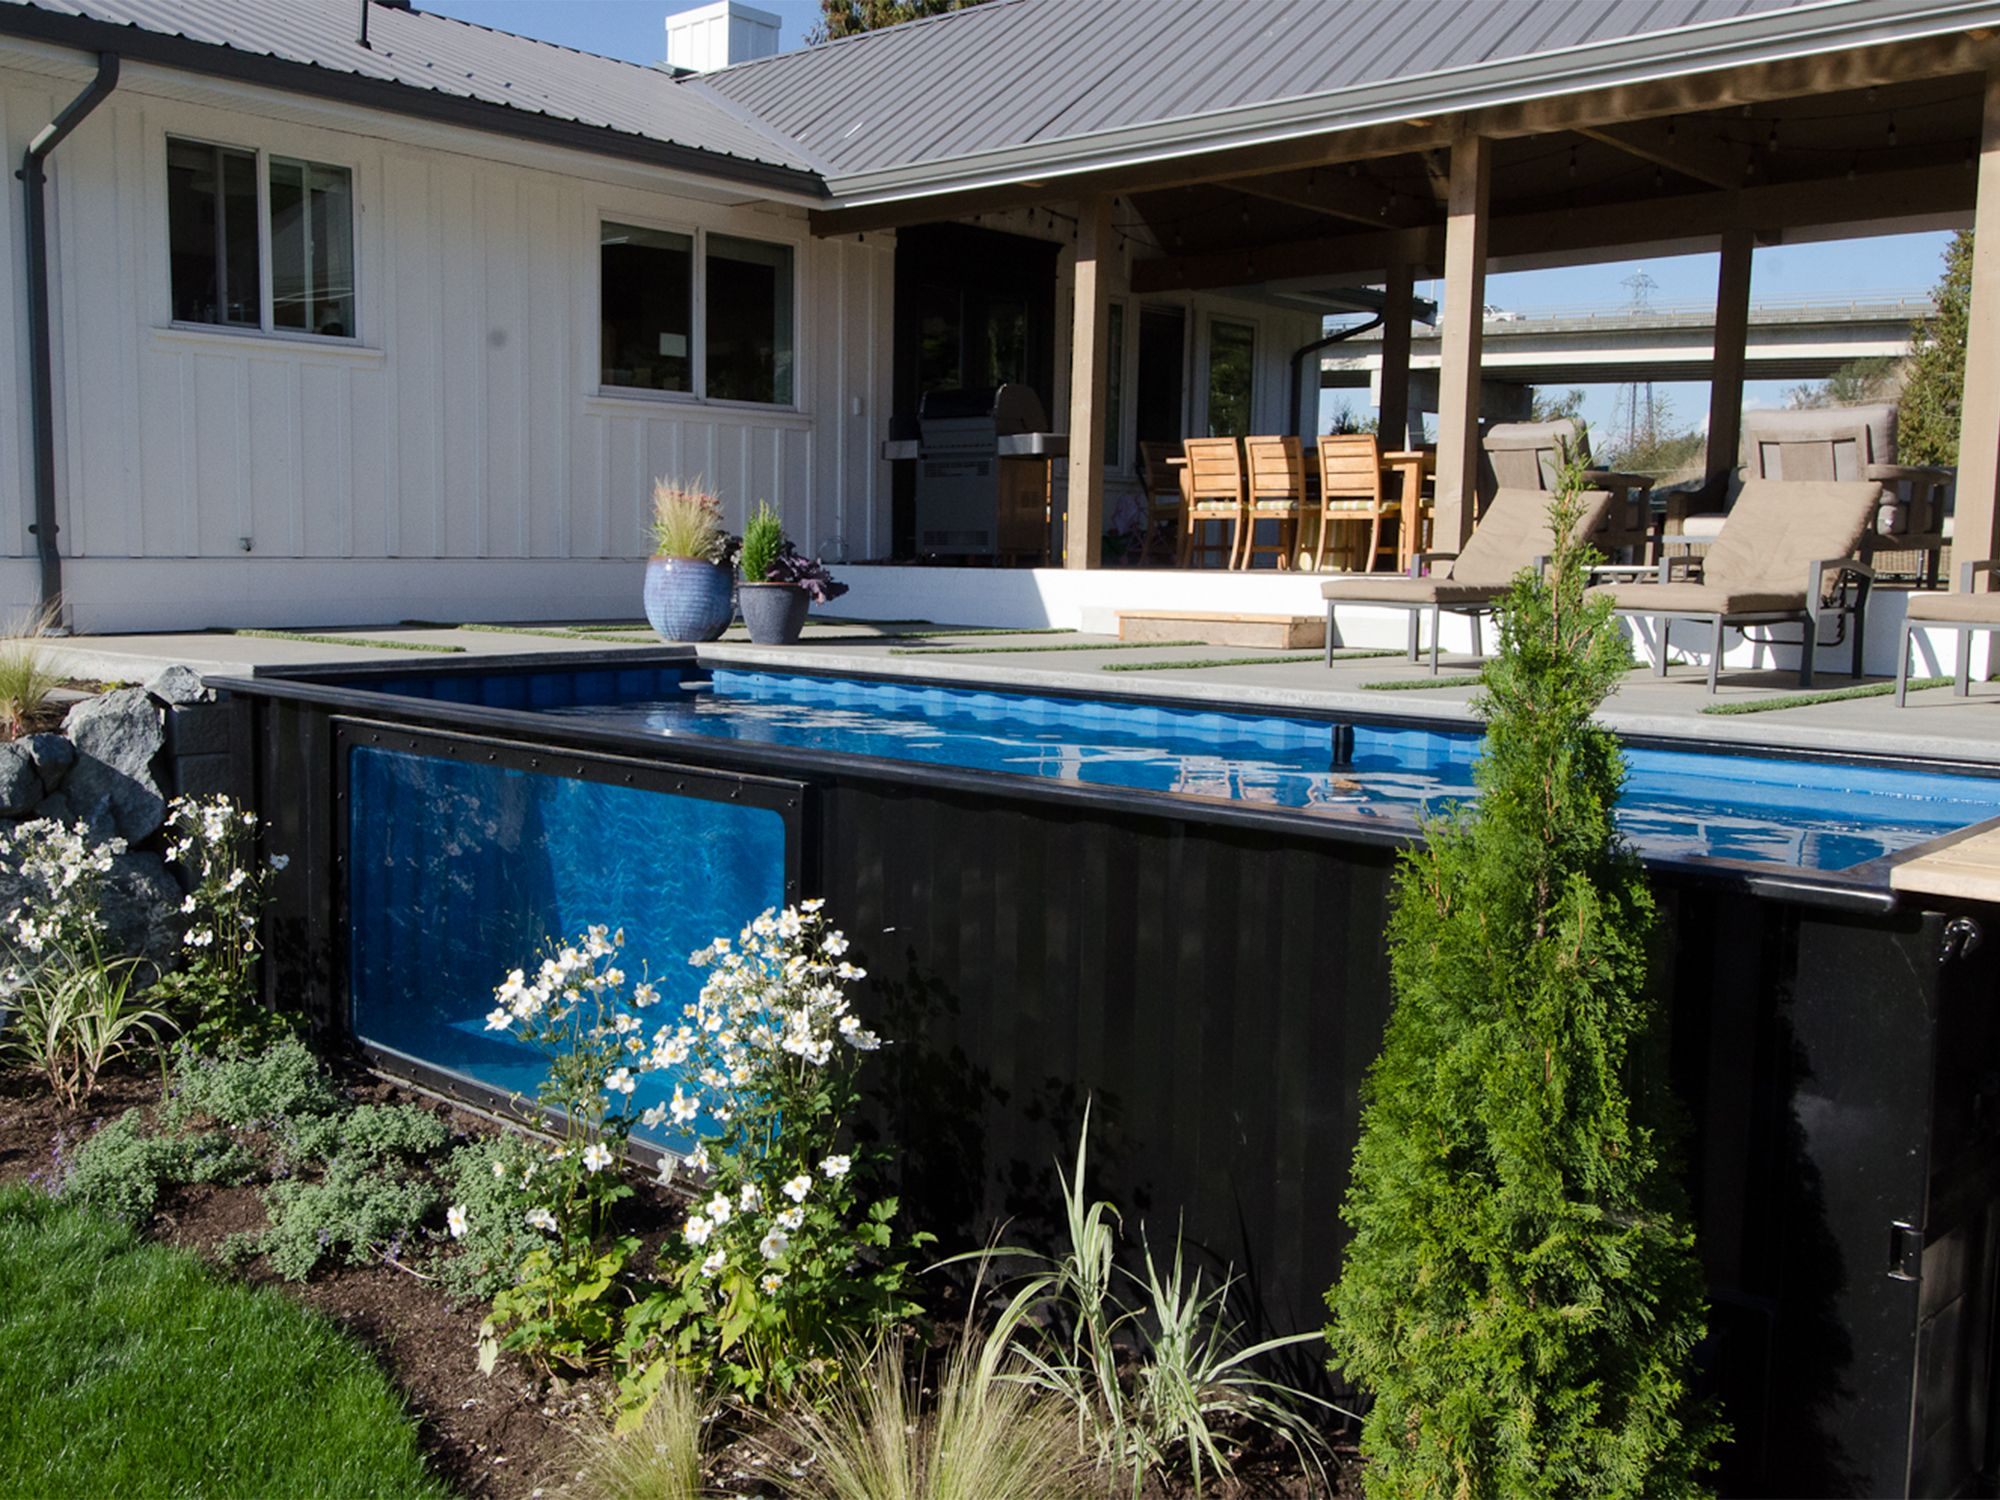 Shipping Container Swimming Pool - Container - Pinterest - Shipping